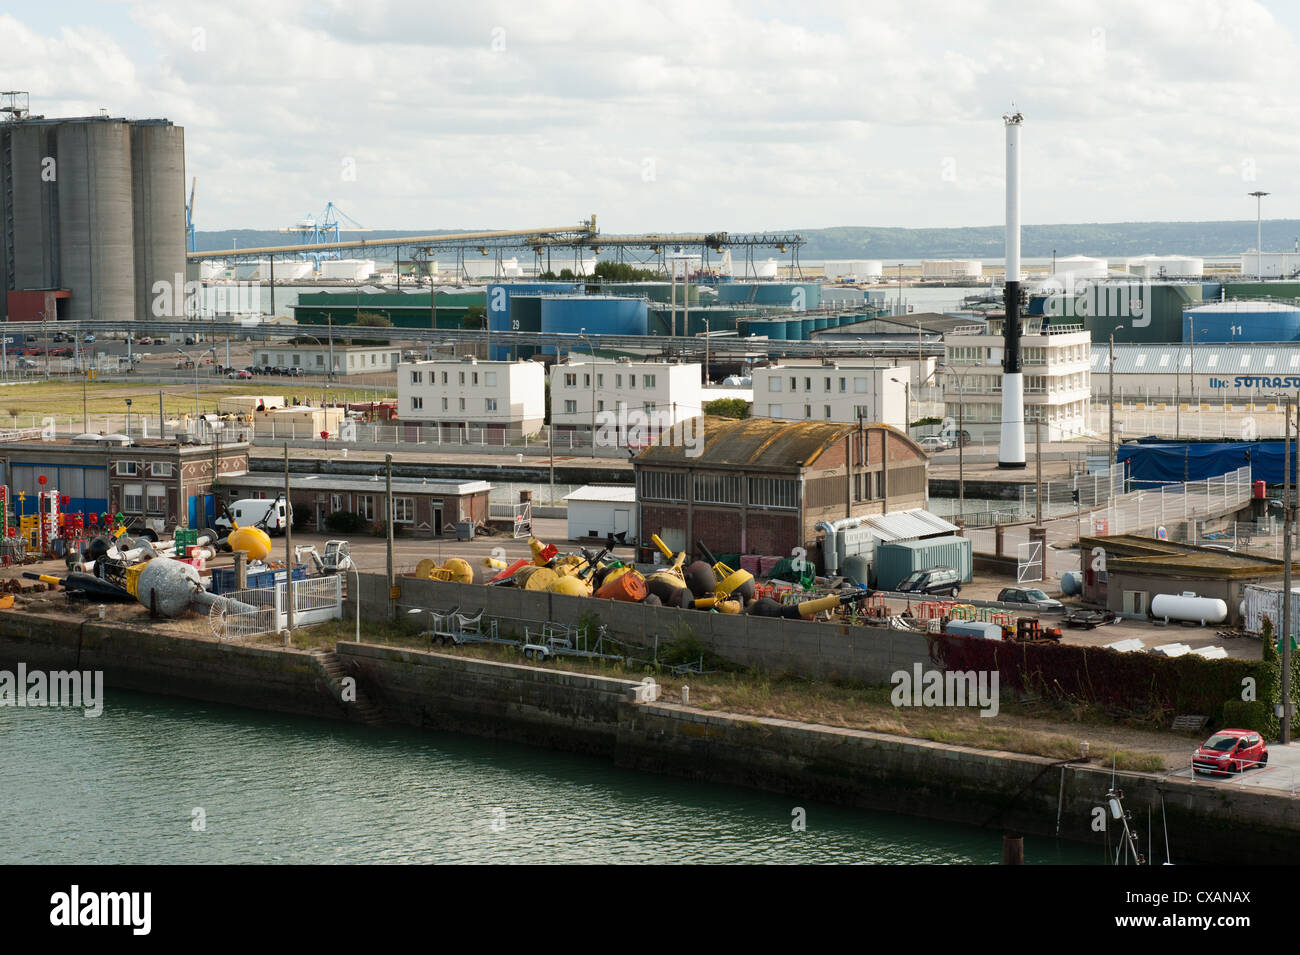 Industrial view at the port of Le Harvre, north coast of France. - Stock Image